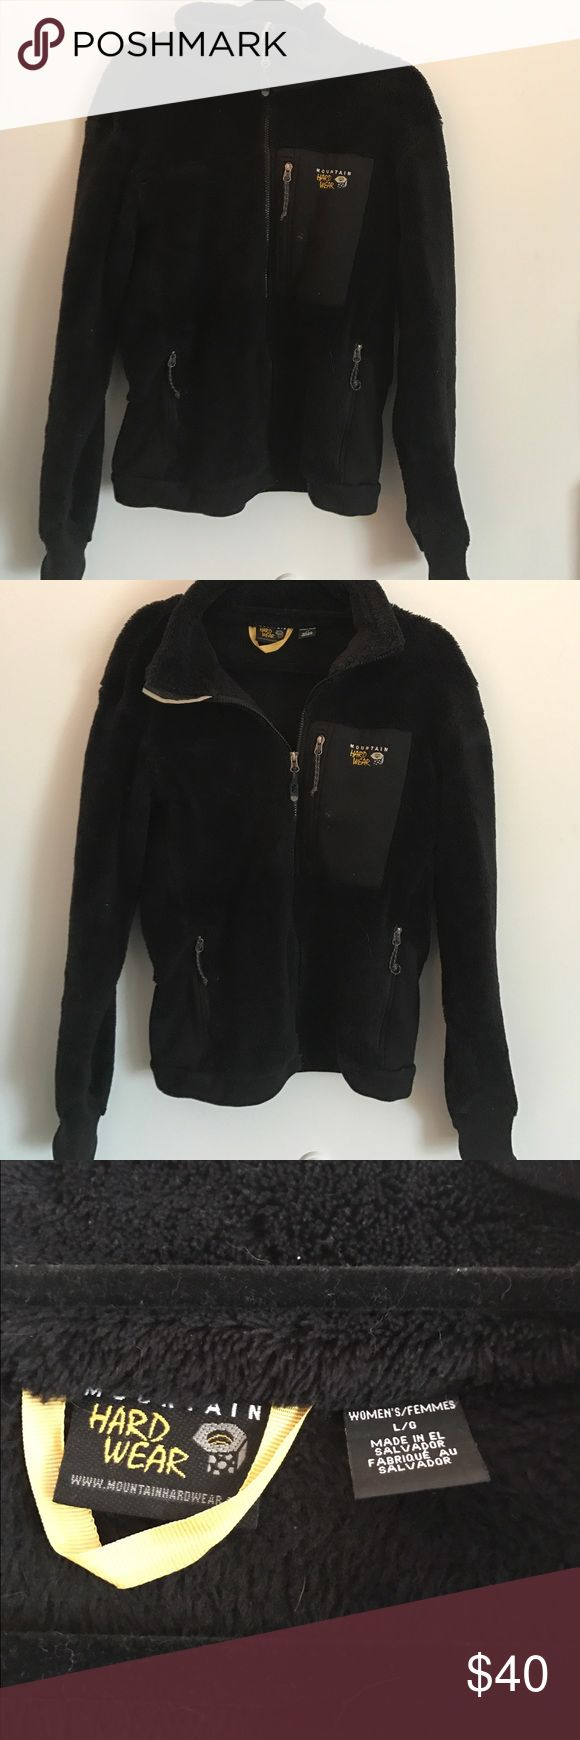 MOUNTAIN HARDWEAR WOMEN'S MONKEY JACKET This is a black jacket in size large from Mountain Hardwear. It's great for colder weather and the fleece is super warm and soft. The jacket is only lightly worn and is still in great condition! Mountain Hard Wear Jackets & Coats Utility Jackets